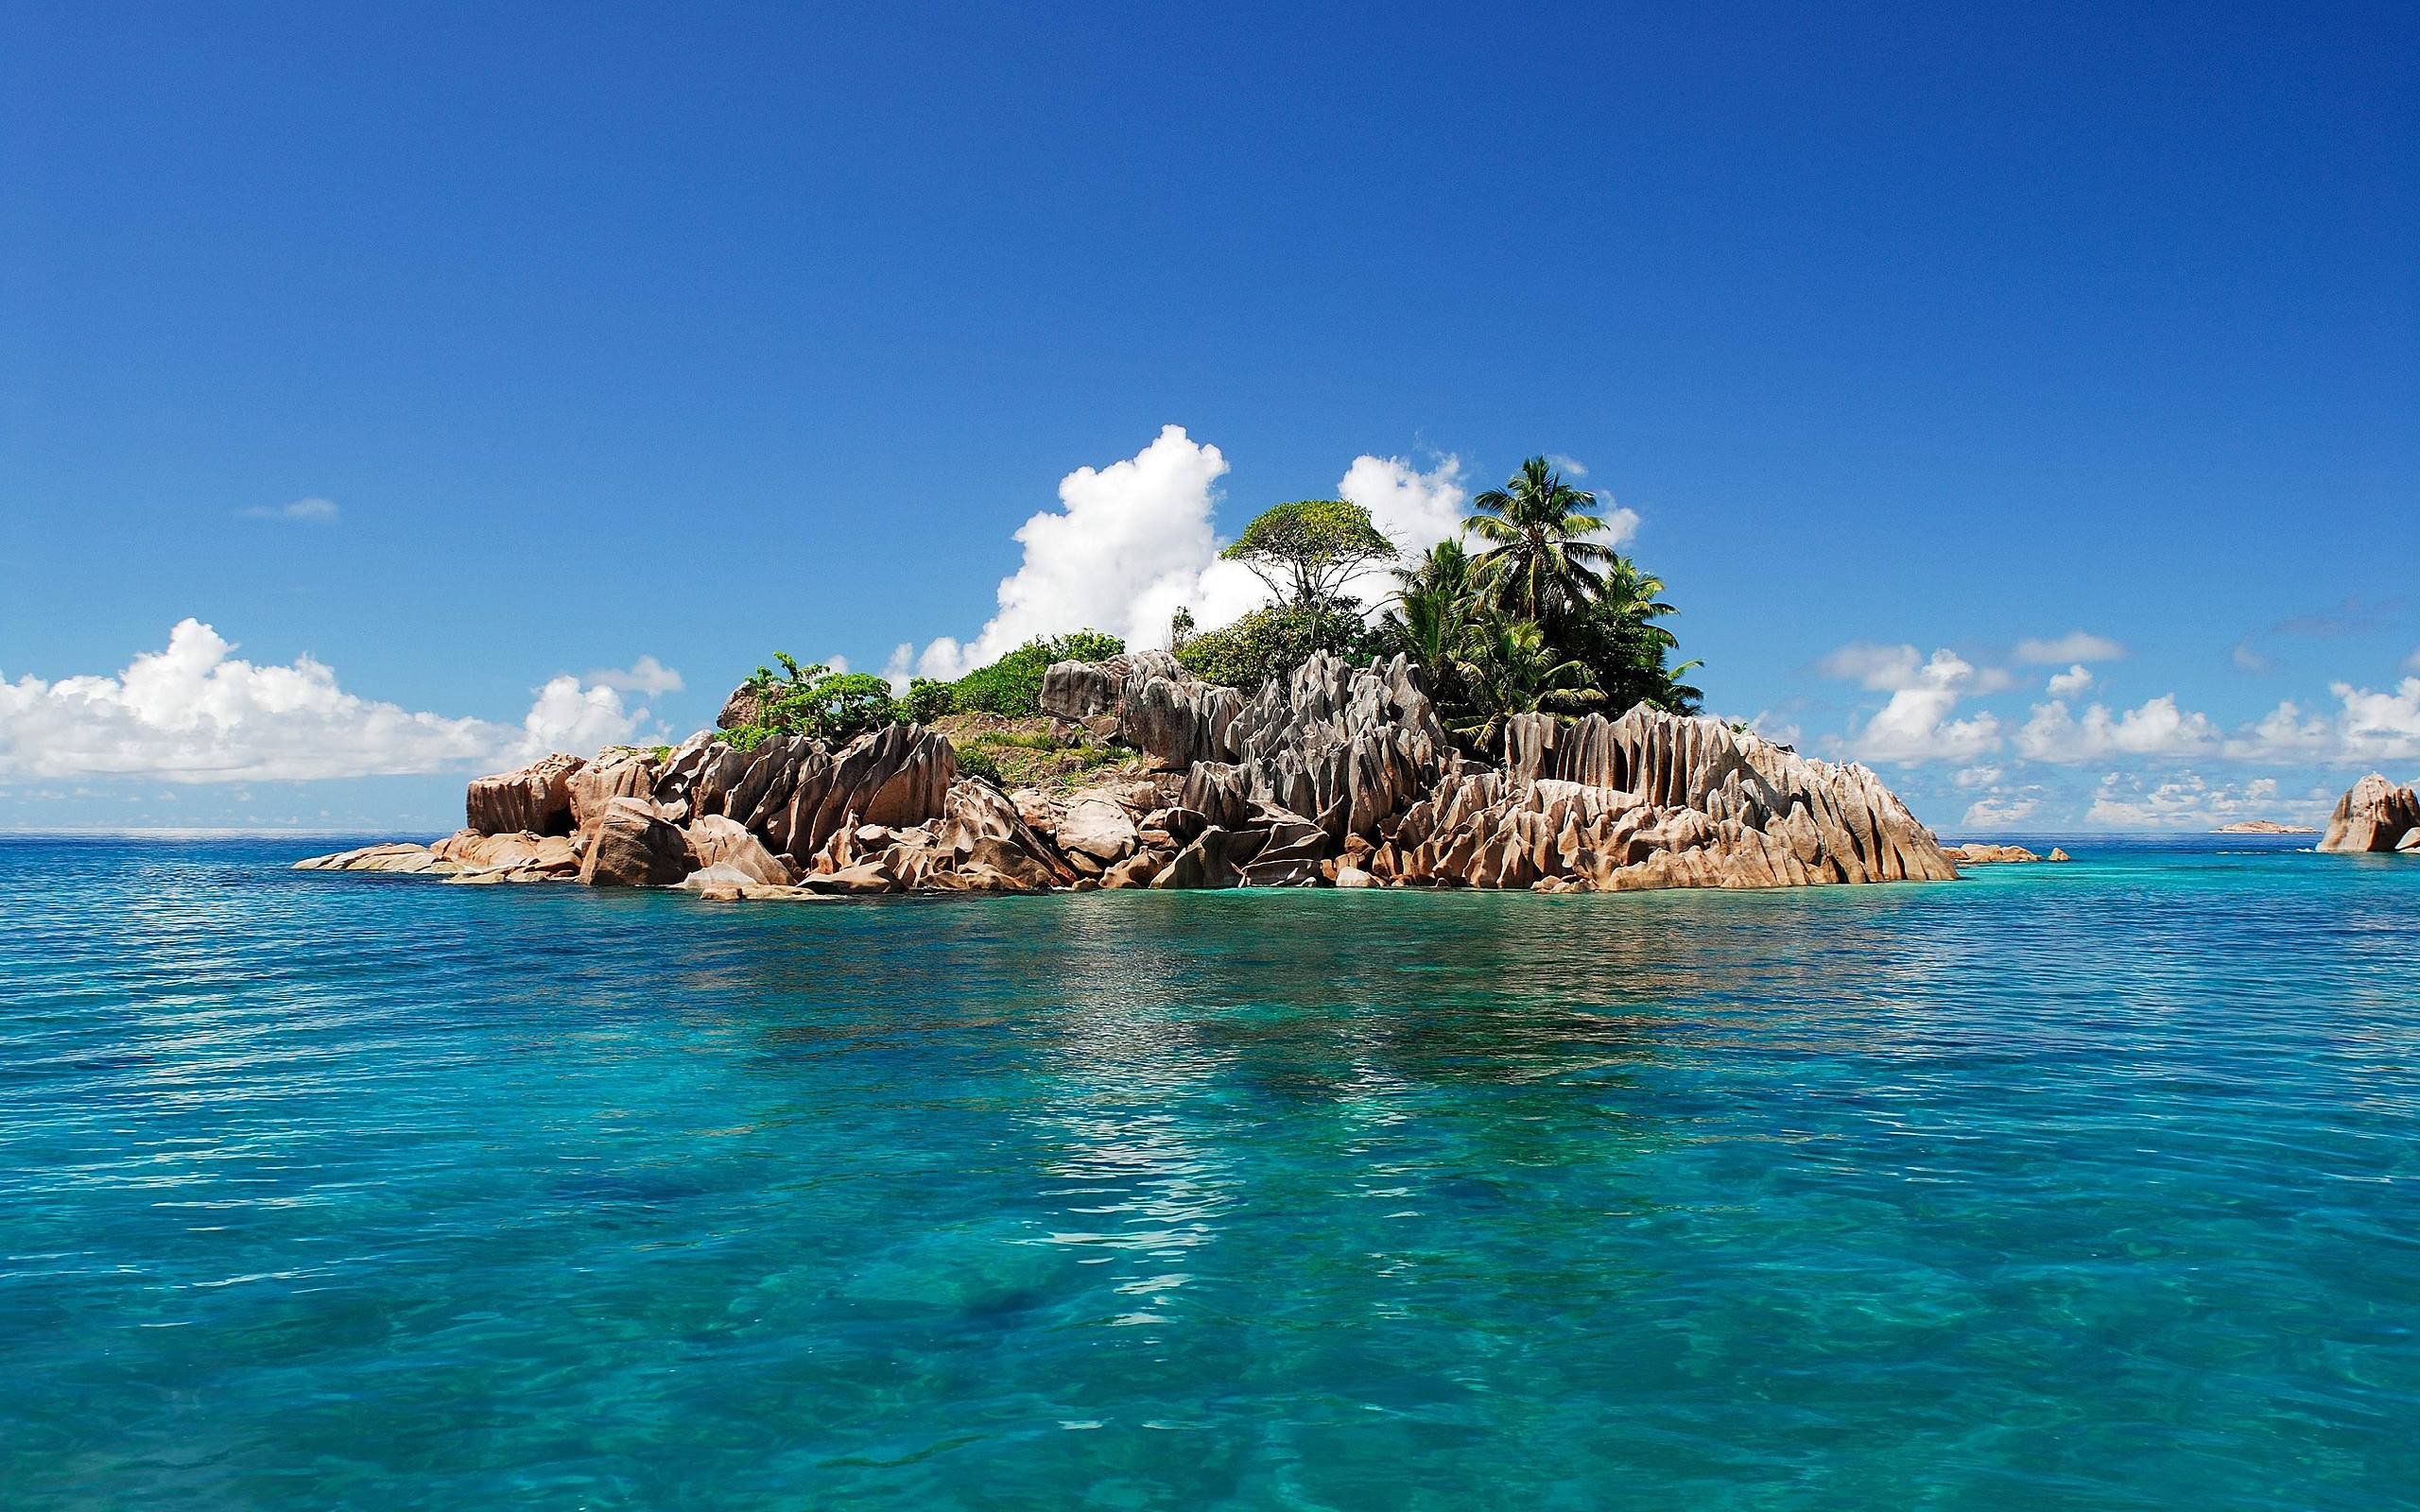 Tropical Island Backgrounds: Tropical Island Desktop Backgrounds